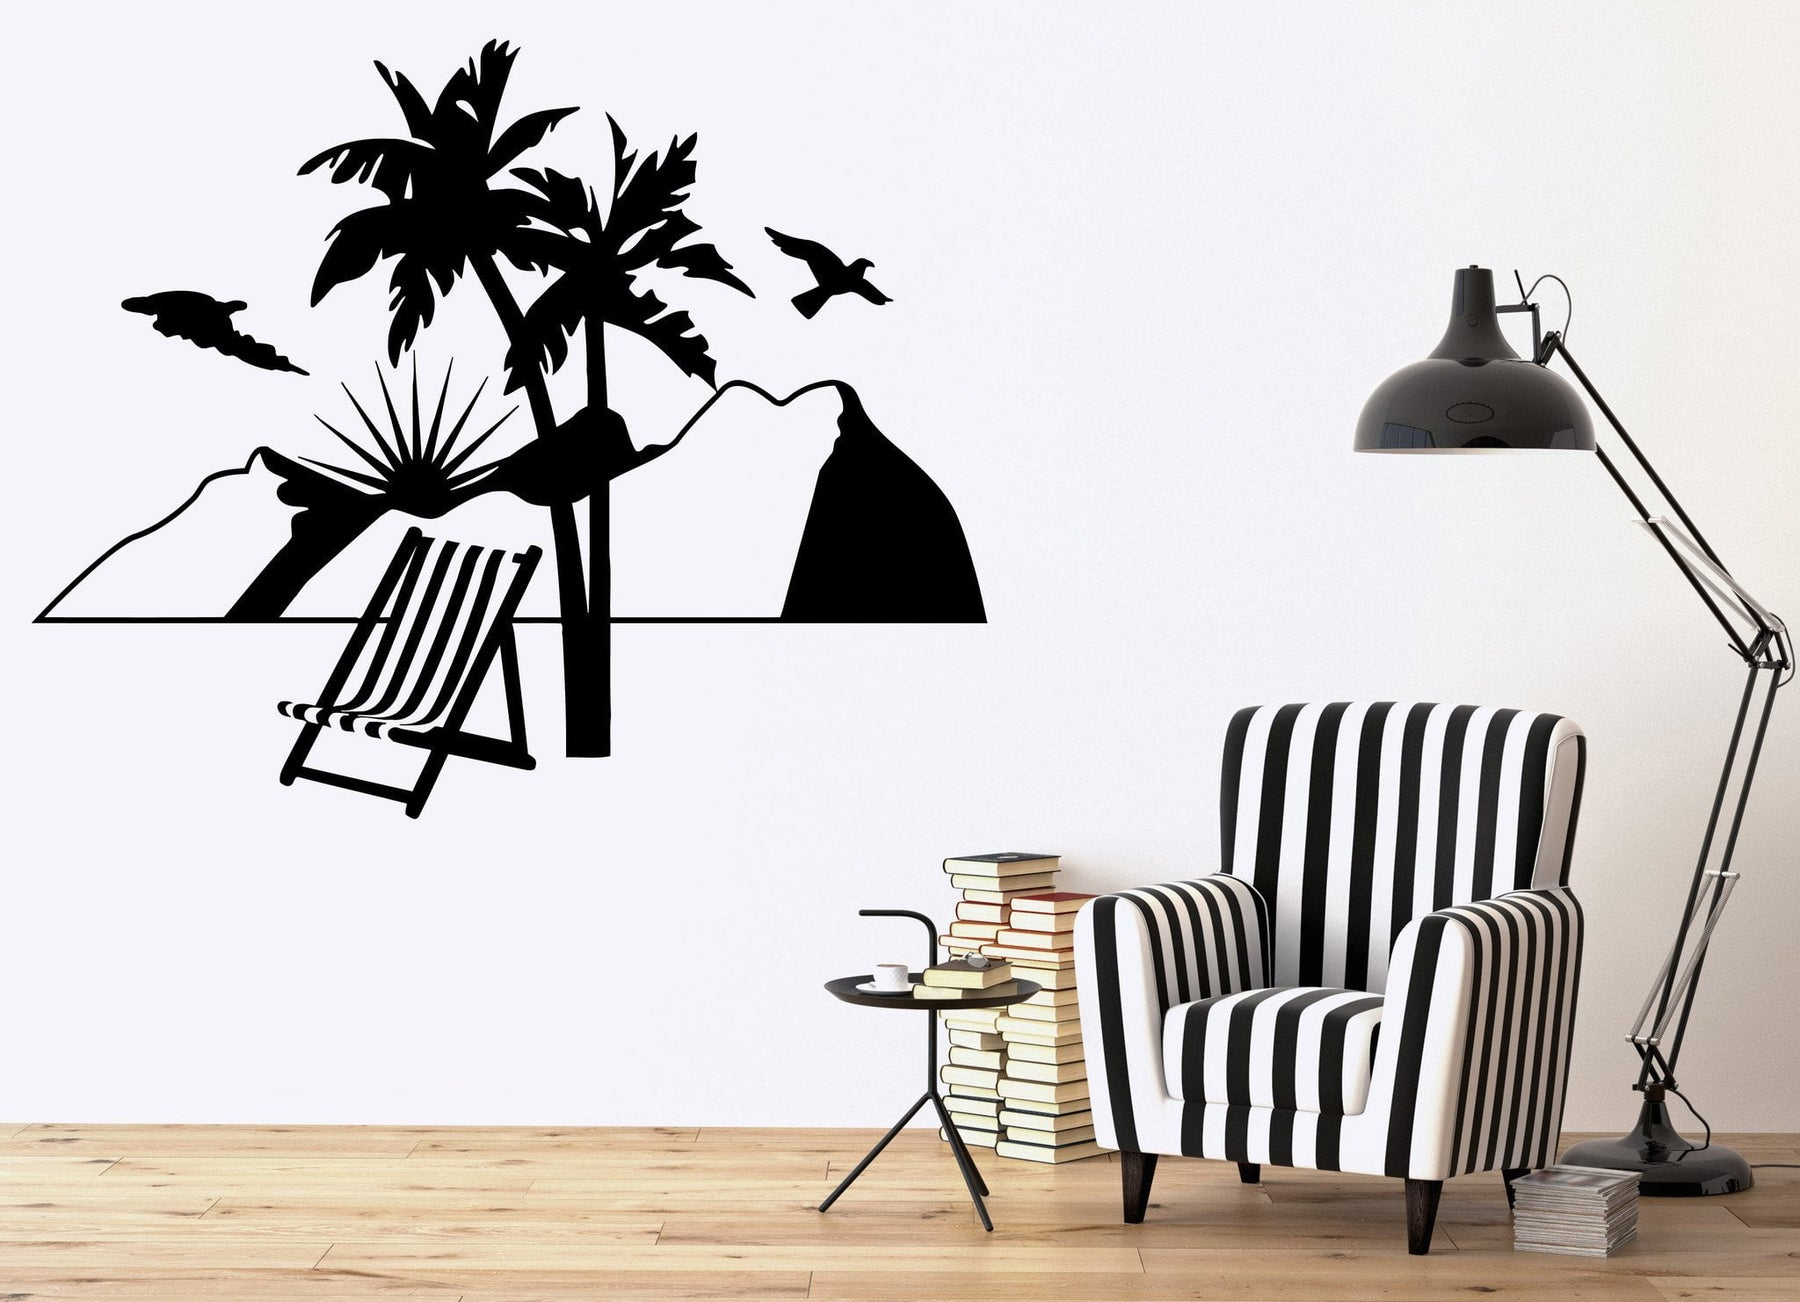 Vacations Wall Stickers Relax Beach Travel Agency Mountains Vinyl Decal Unique Gift (ig2388)